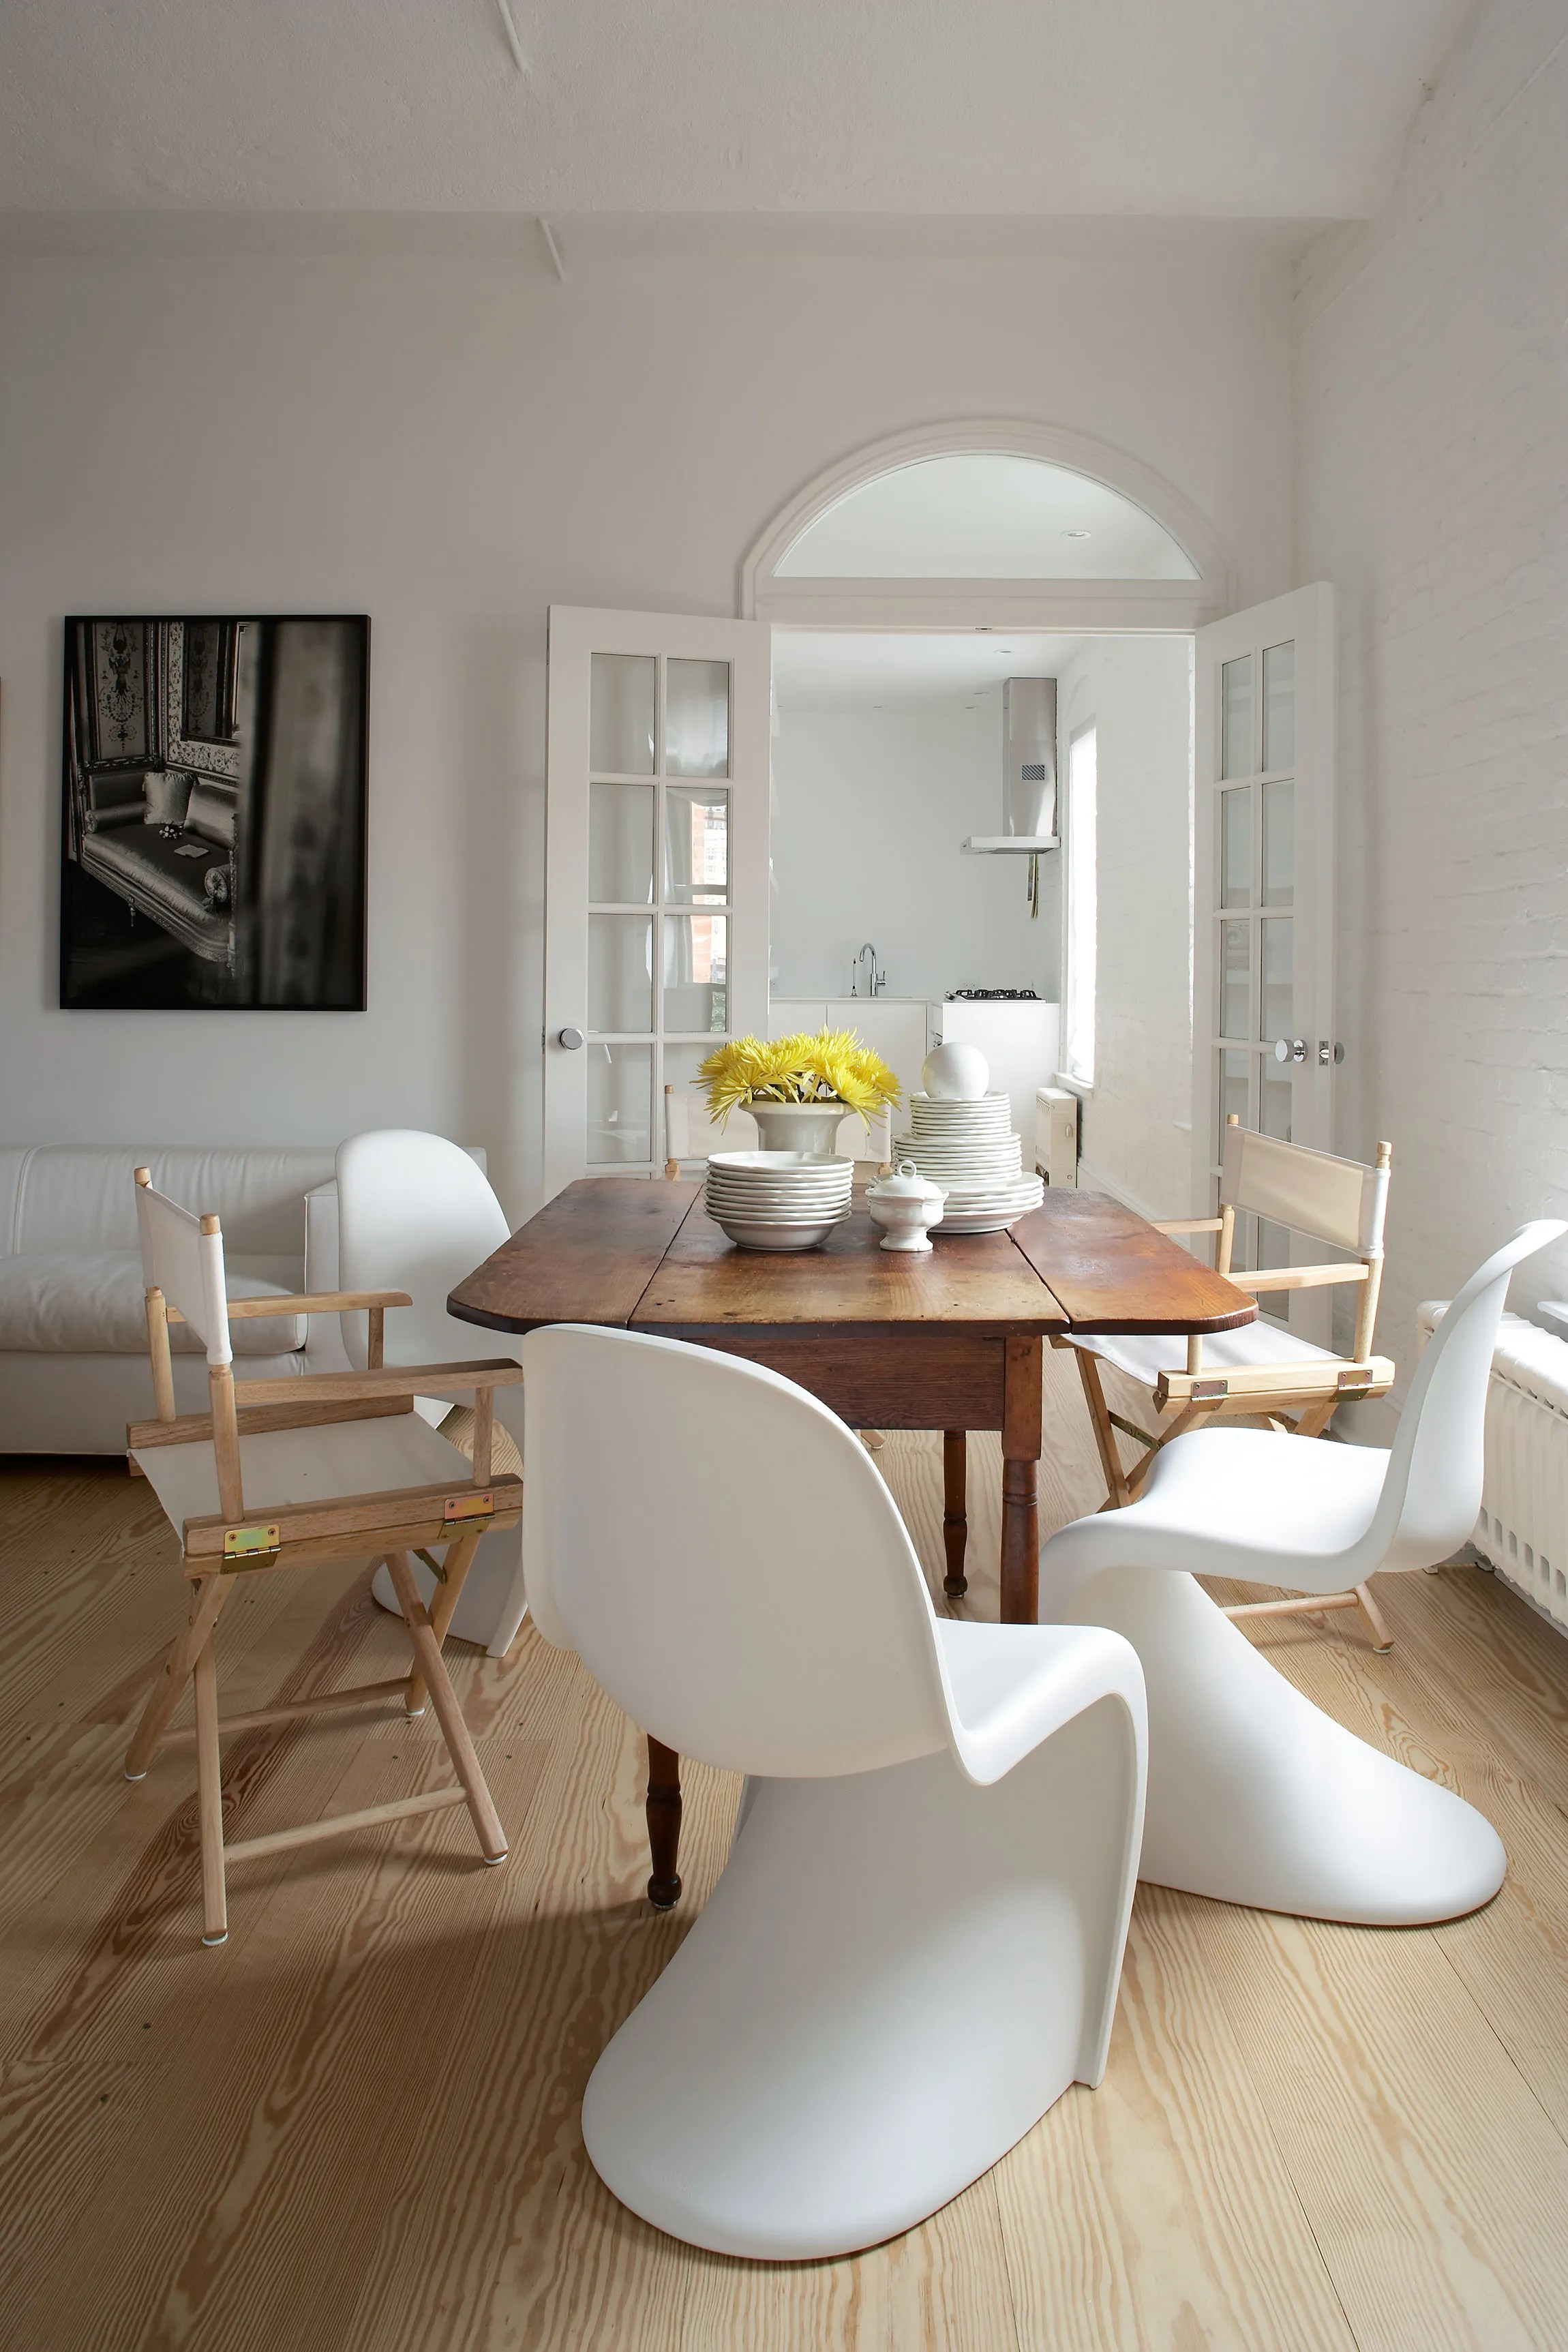 Mixing Dining Room Chairs How To Mix And Match Your Dining Table And Chairs Photos